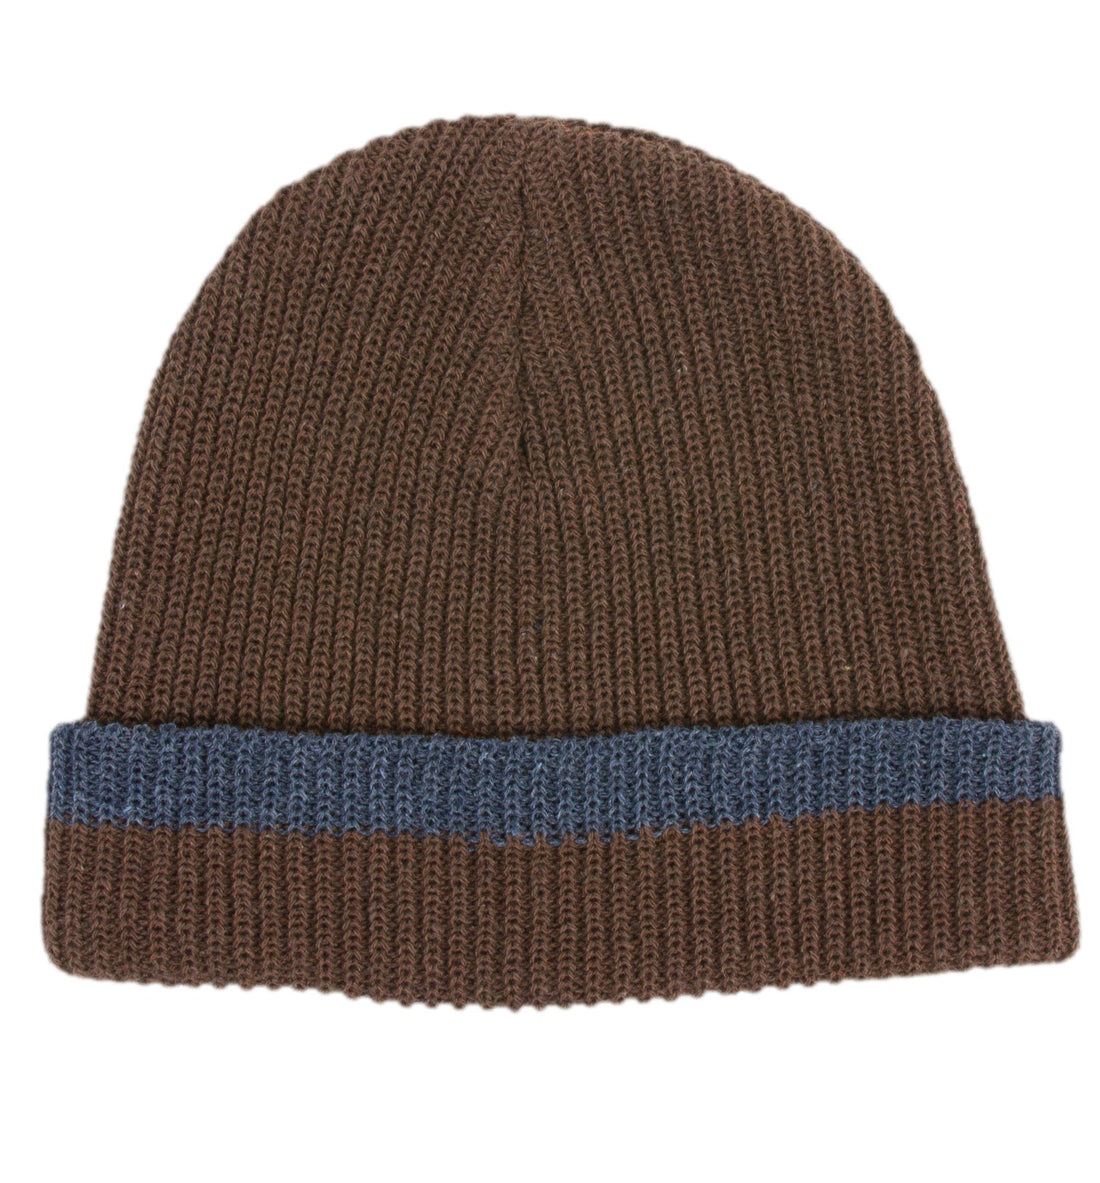 Treeline Beanie - Headwear - Iron and Resin